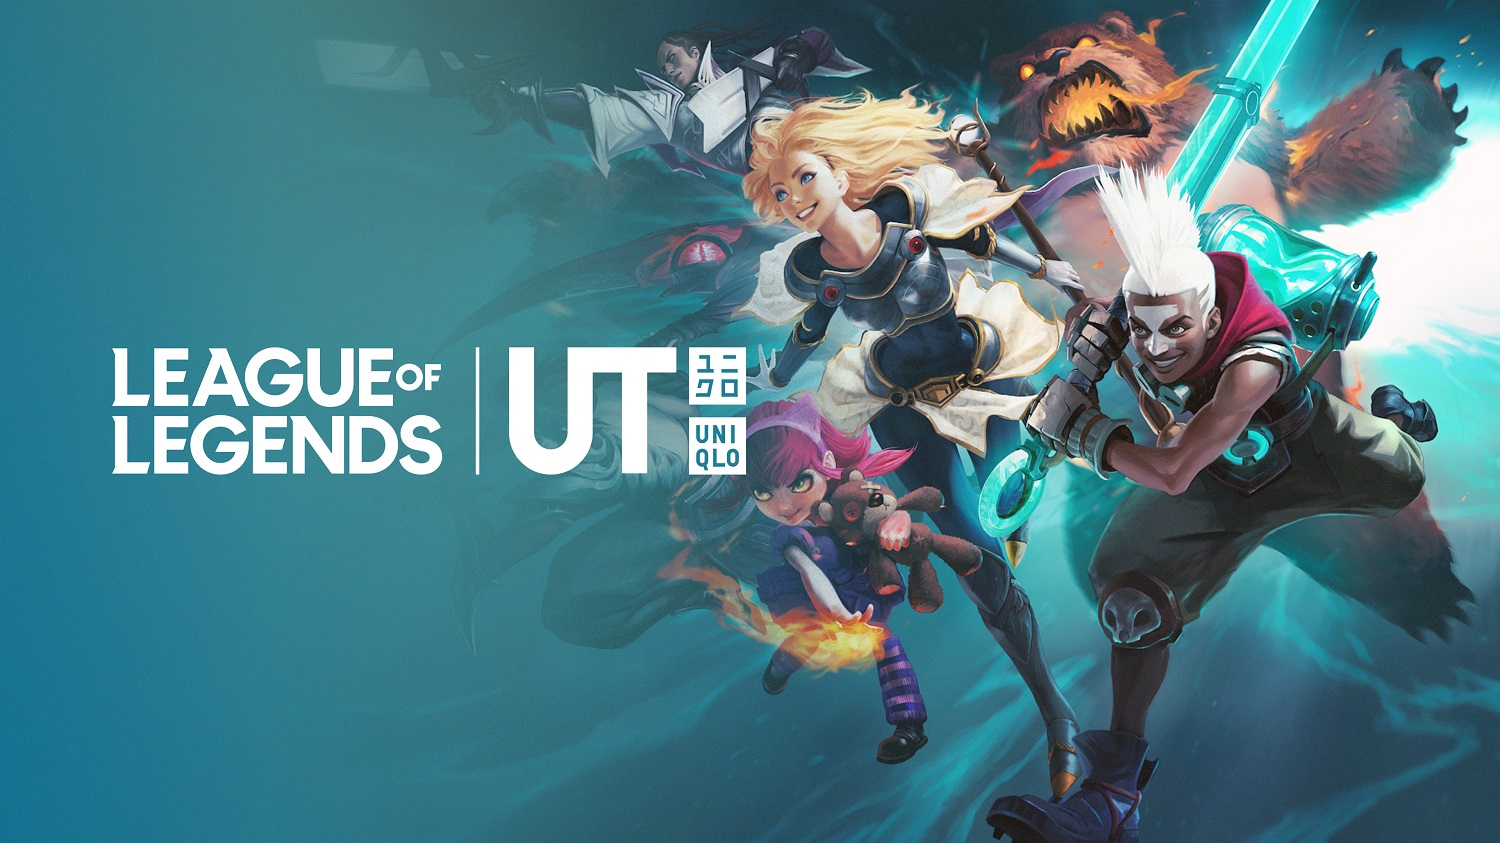 Uniqlo Announces Collaboration With Riot Games' League Of Legends